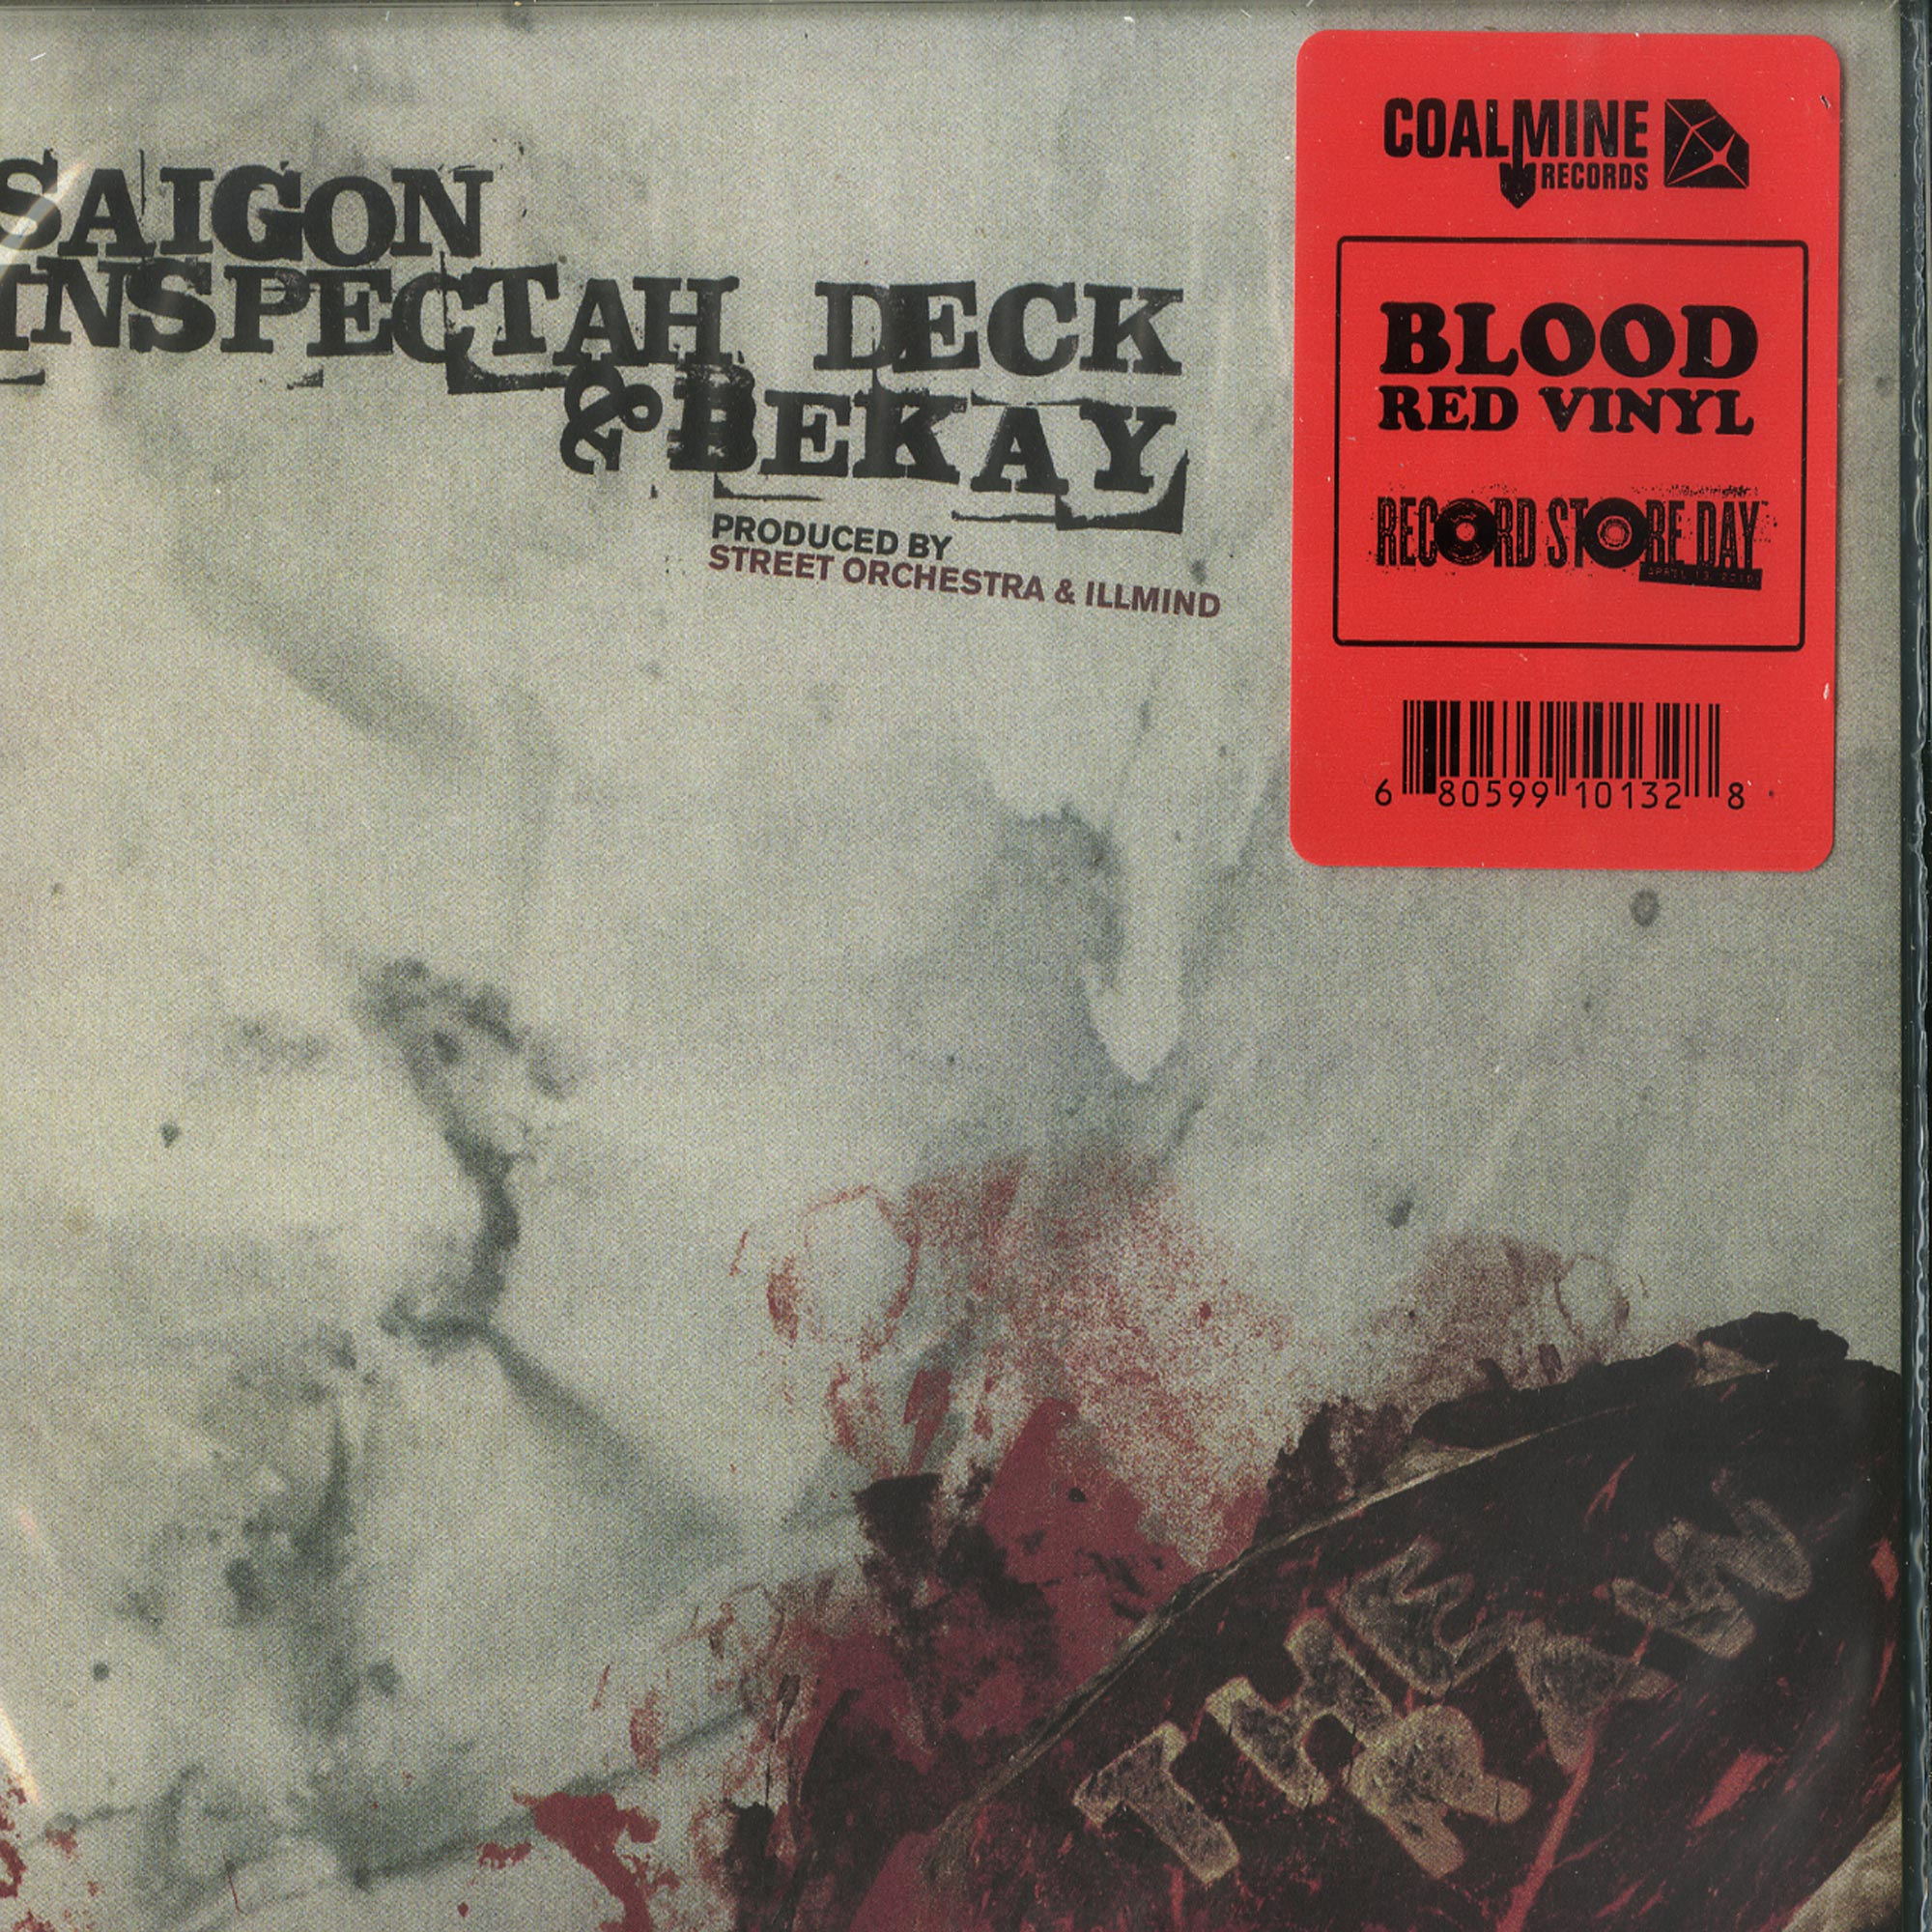 Saigon, Inspectah Deck & Bekay - THE RAW